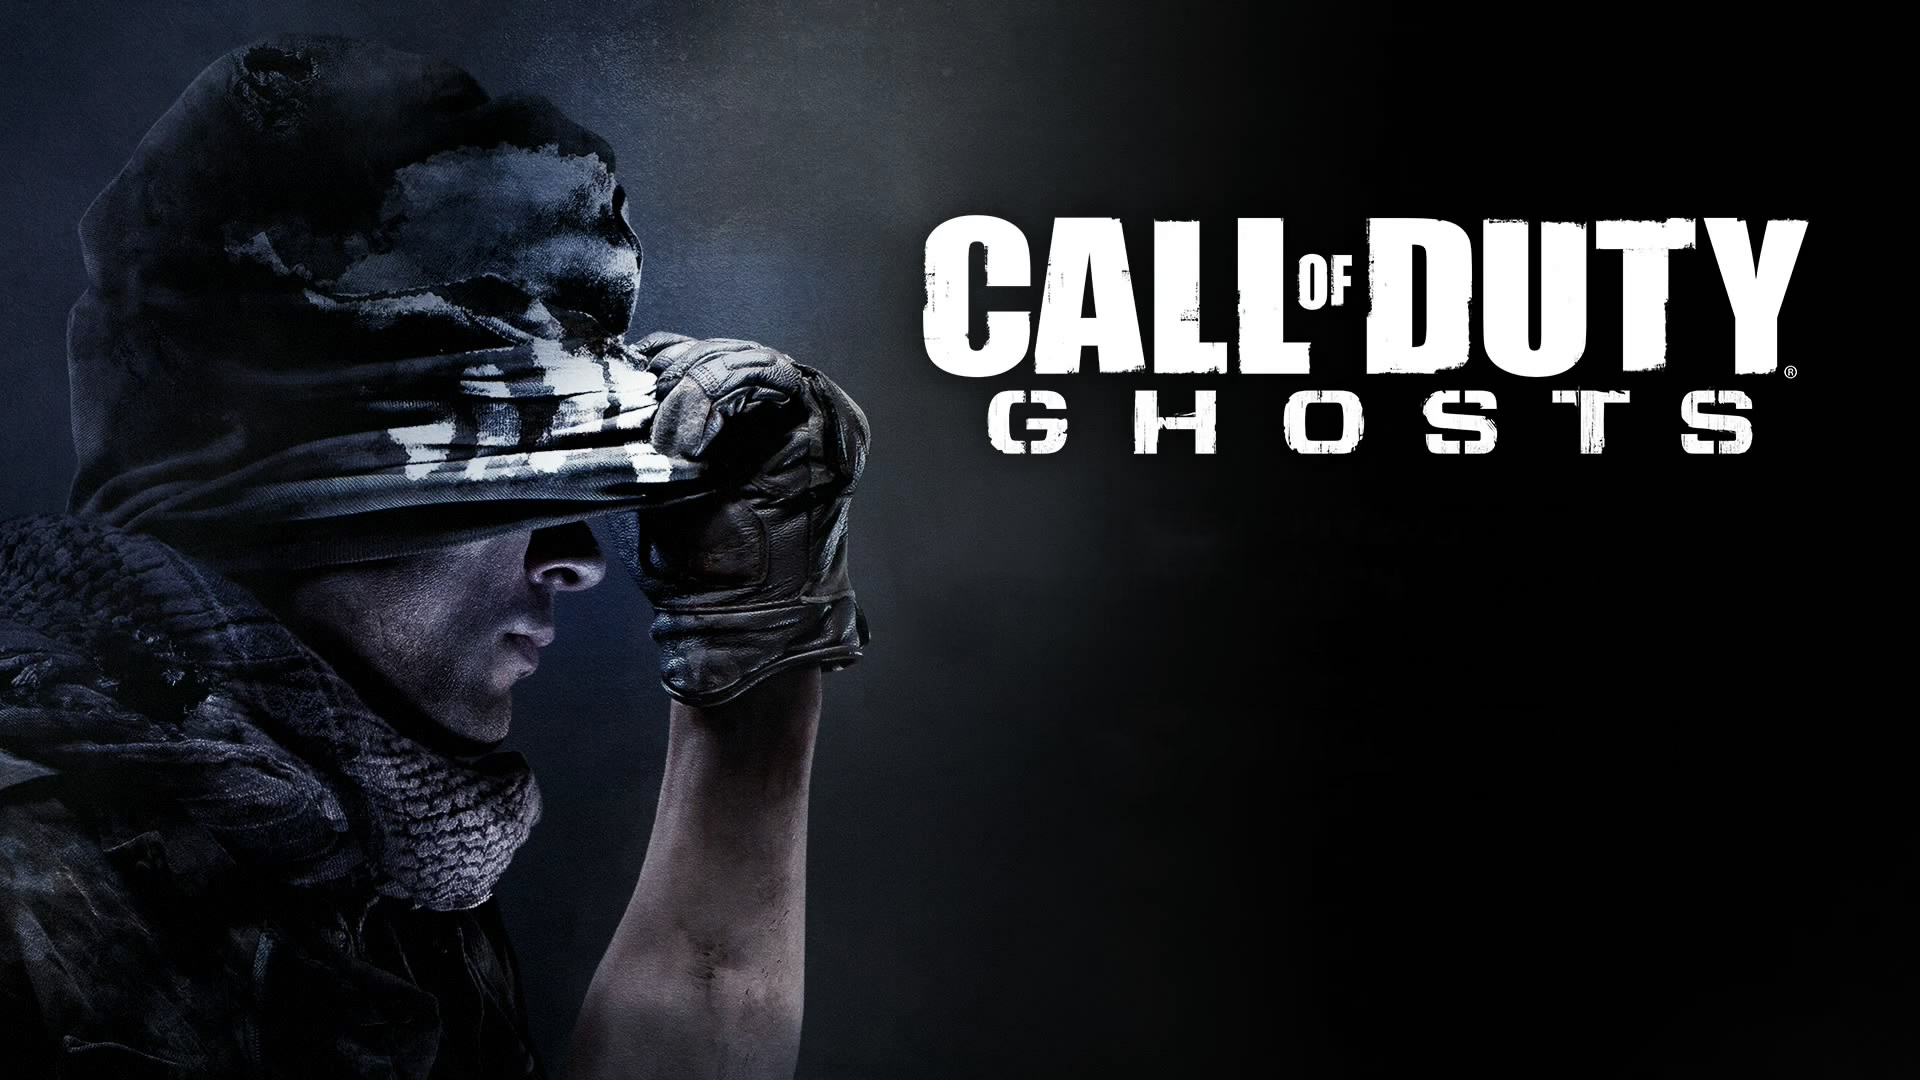 Test de Call of Duty Ghost